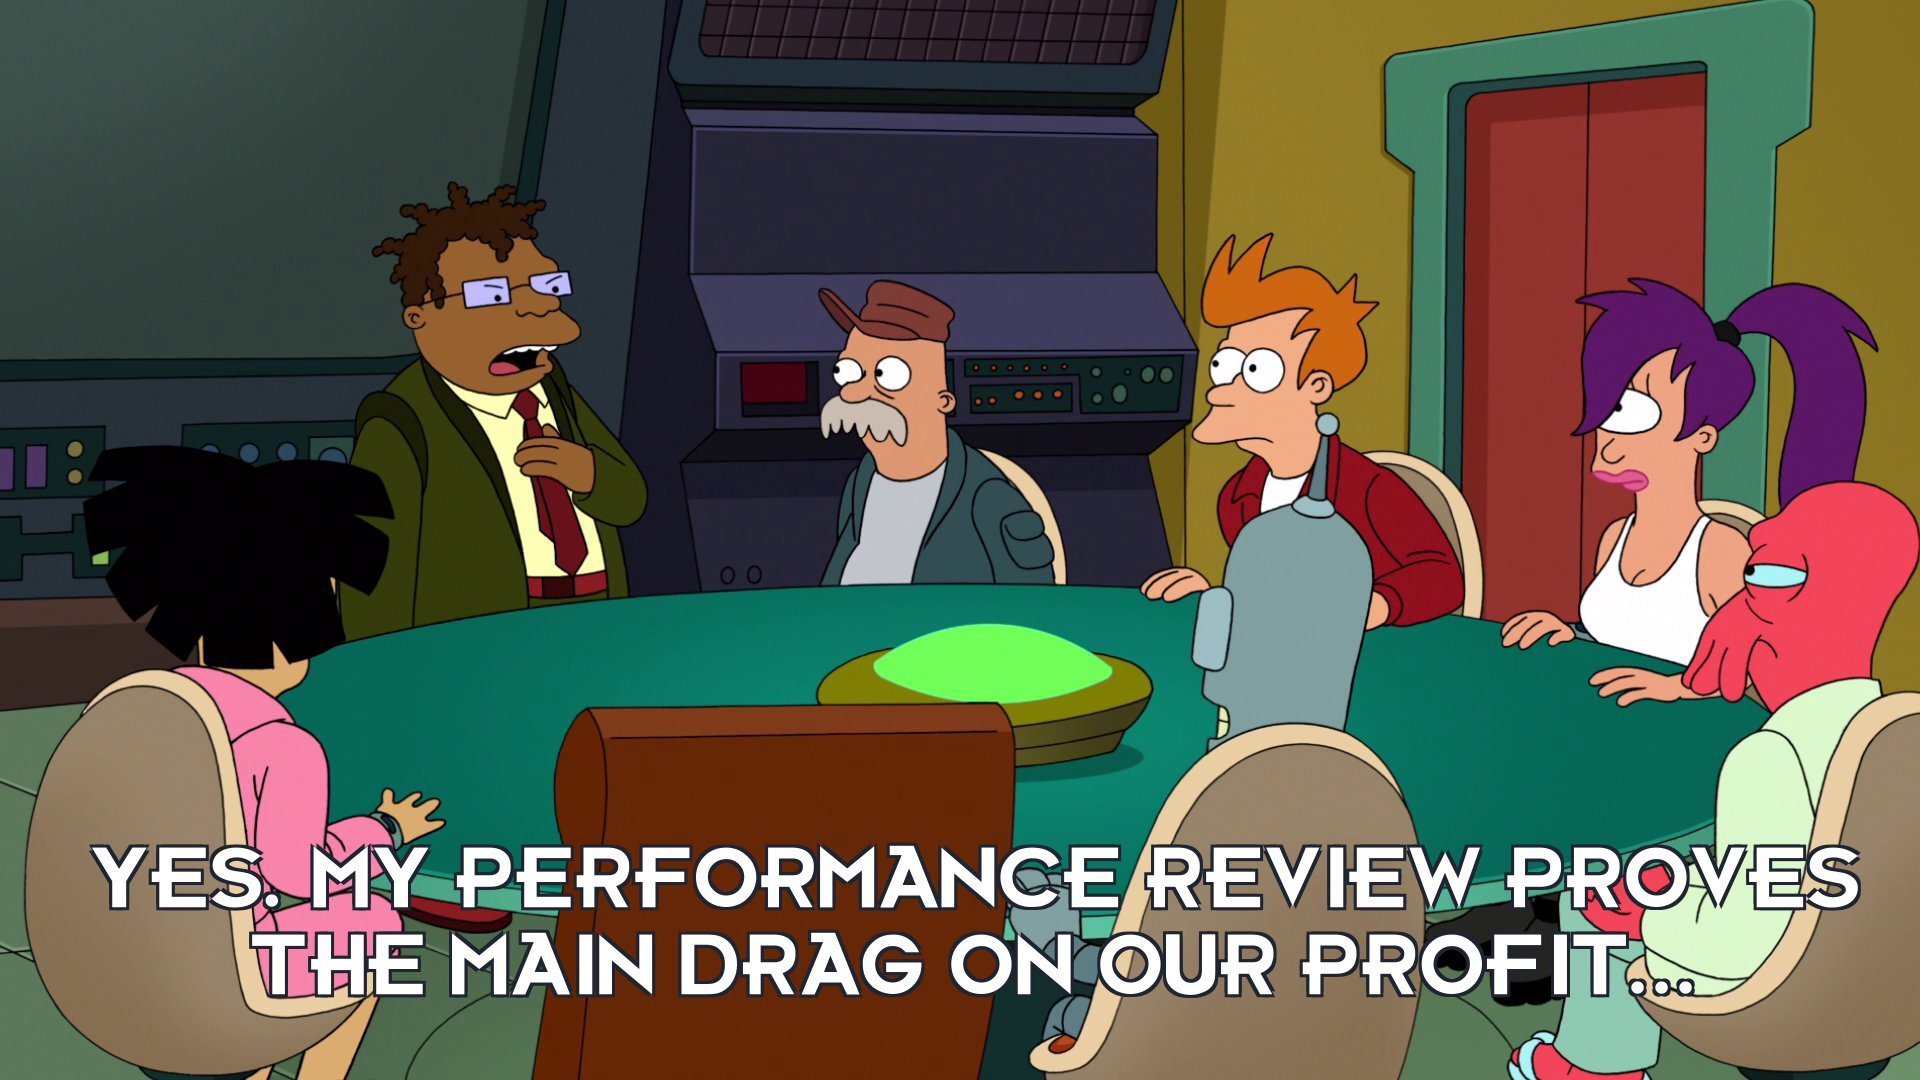 Hermes Conrad: Yes. My performance review proves the main drag on our profit...